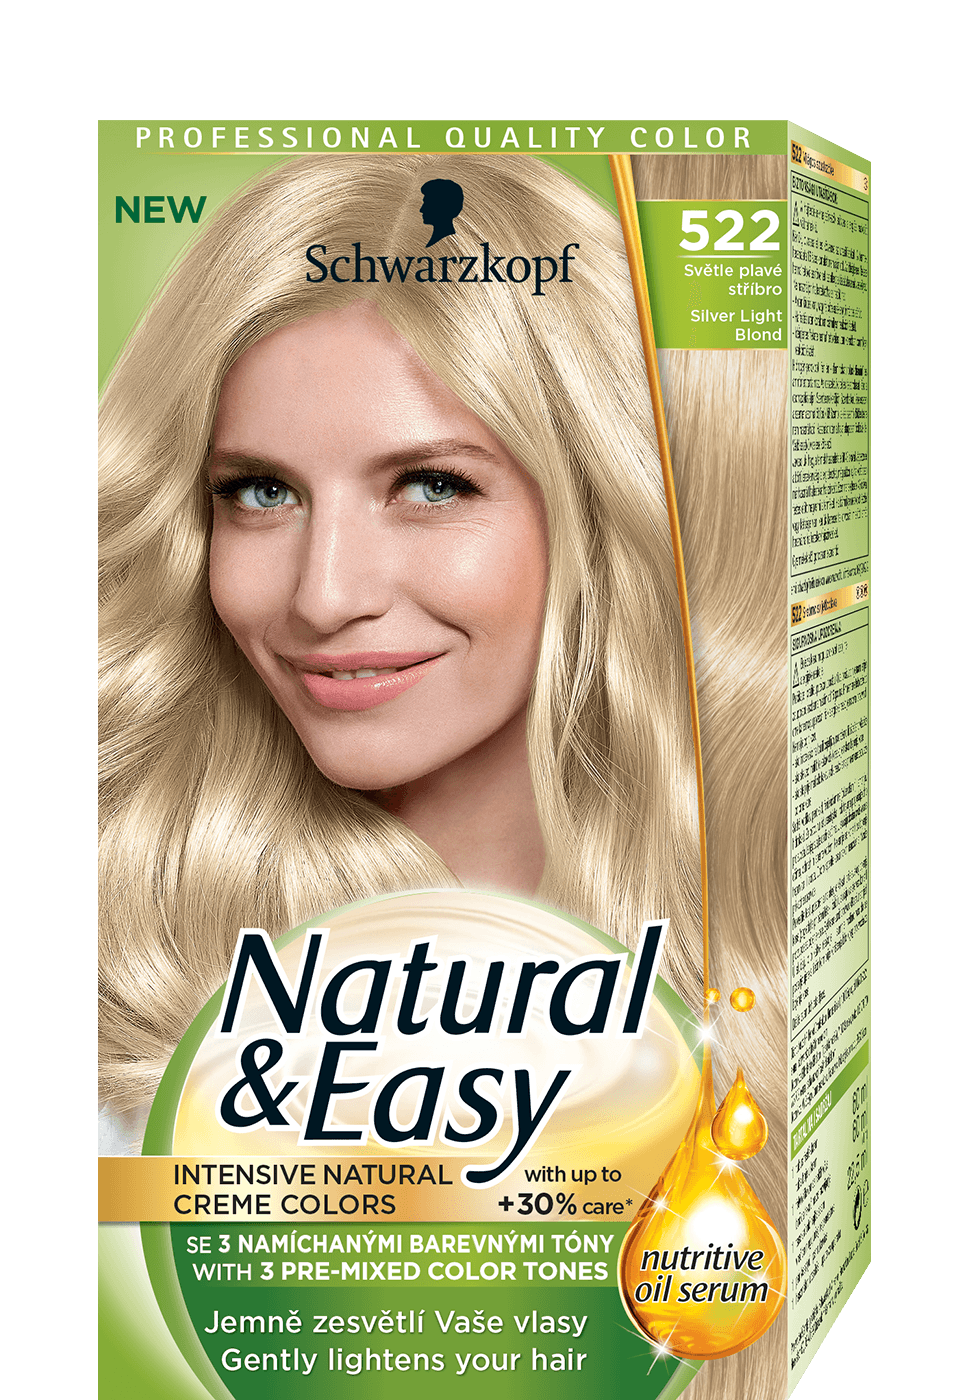 natural_easy_com_blonde_hair_522_silver_light_blond_970x1400